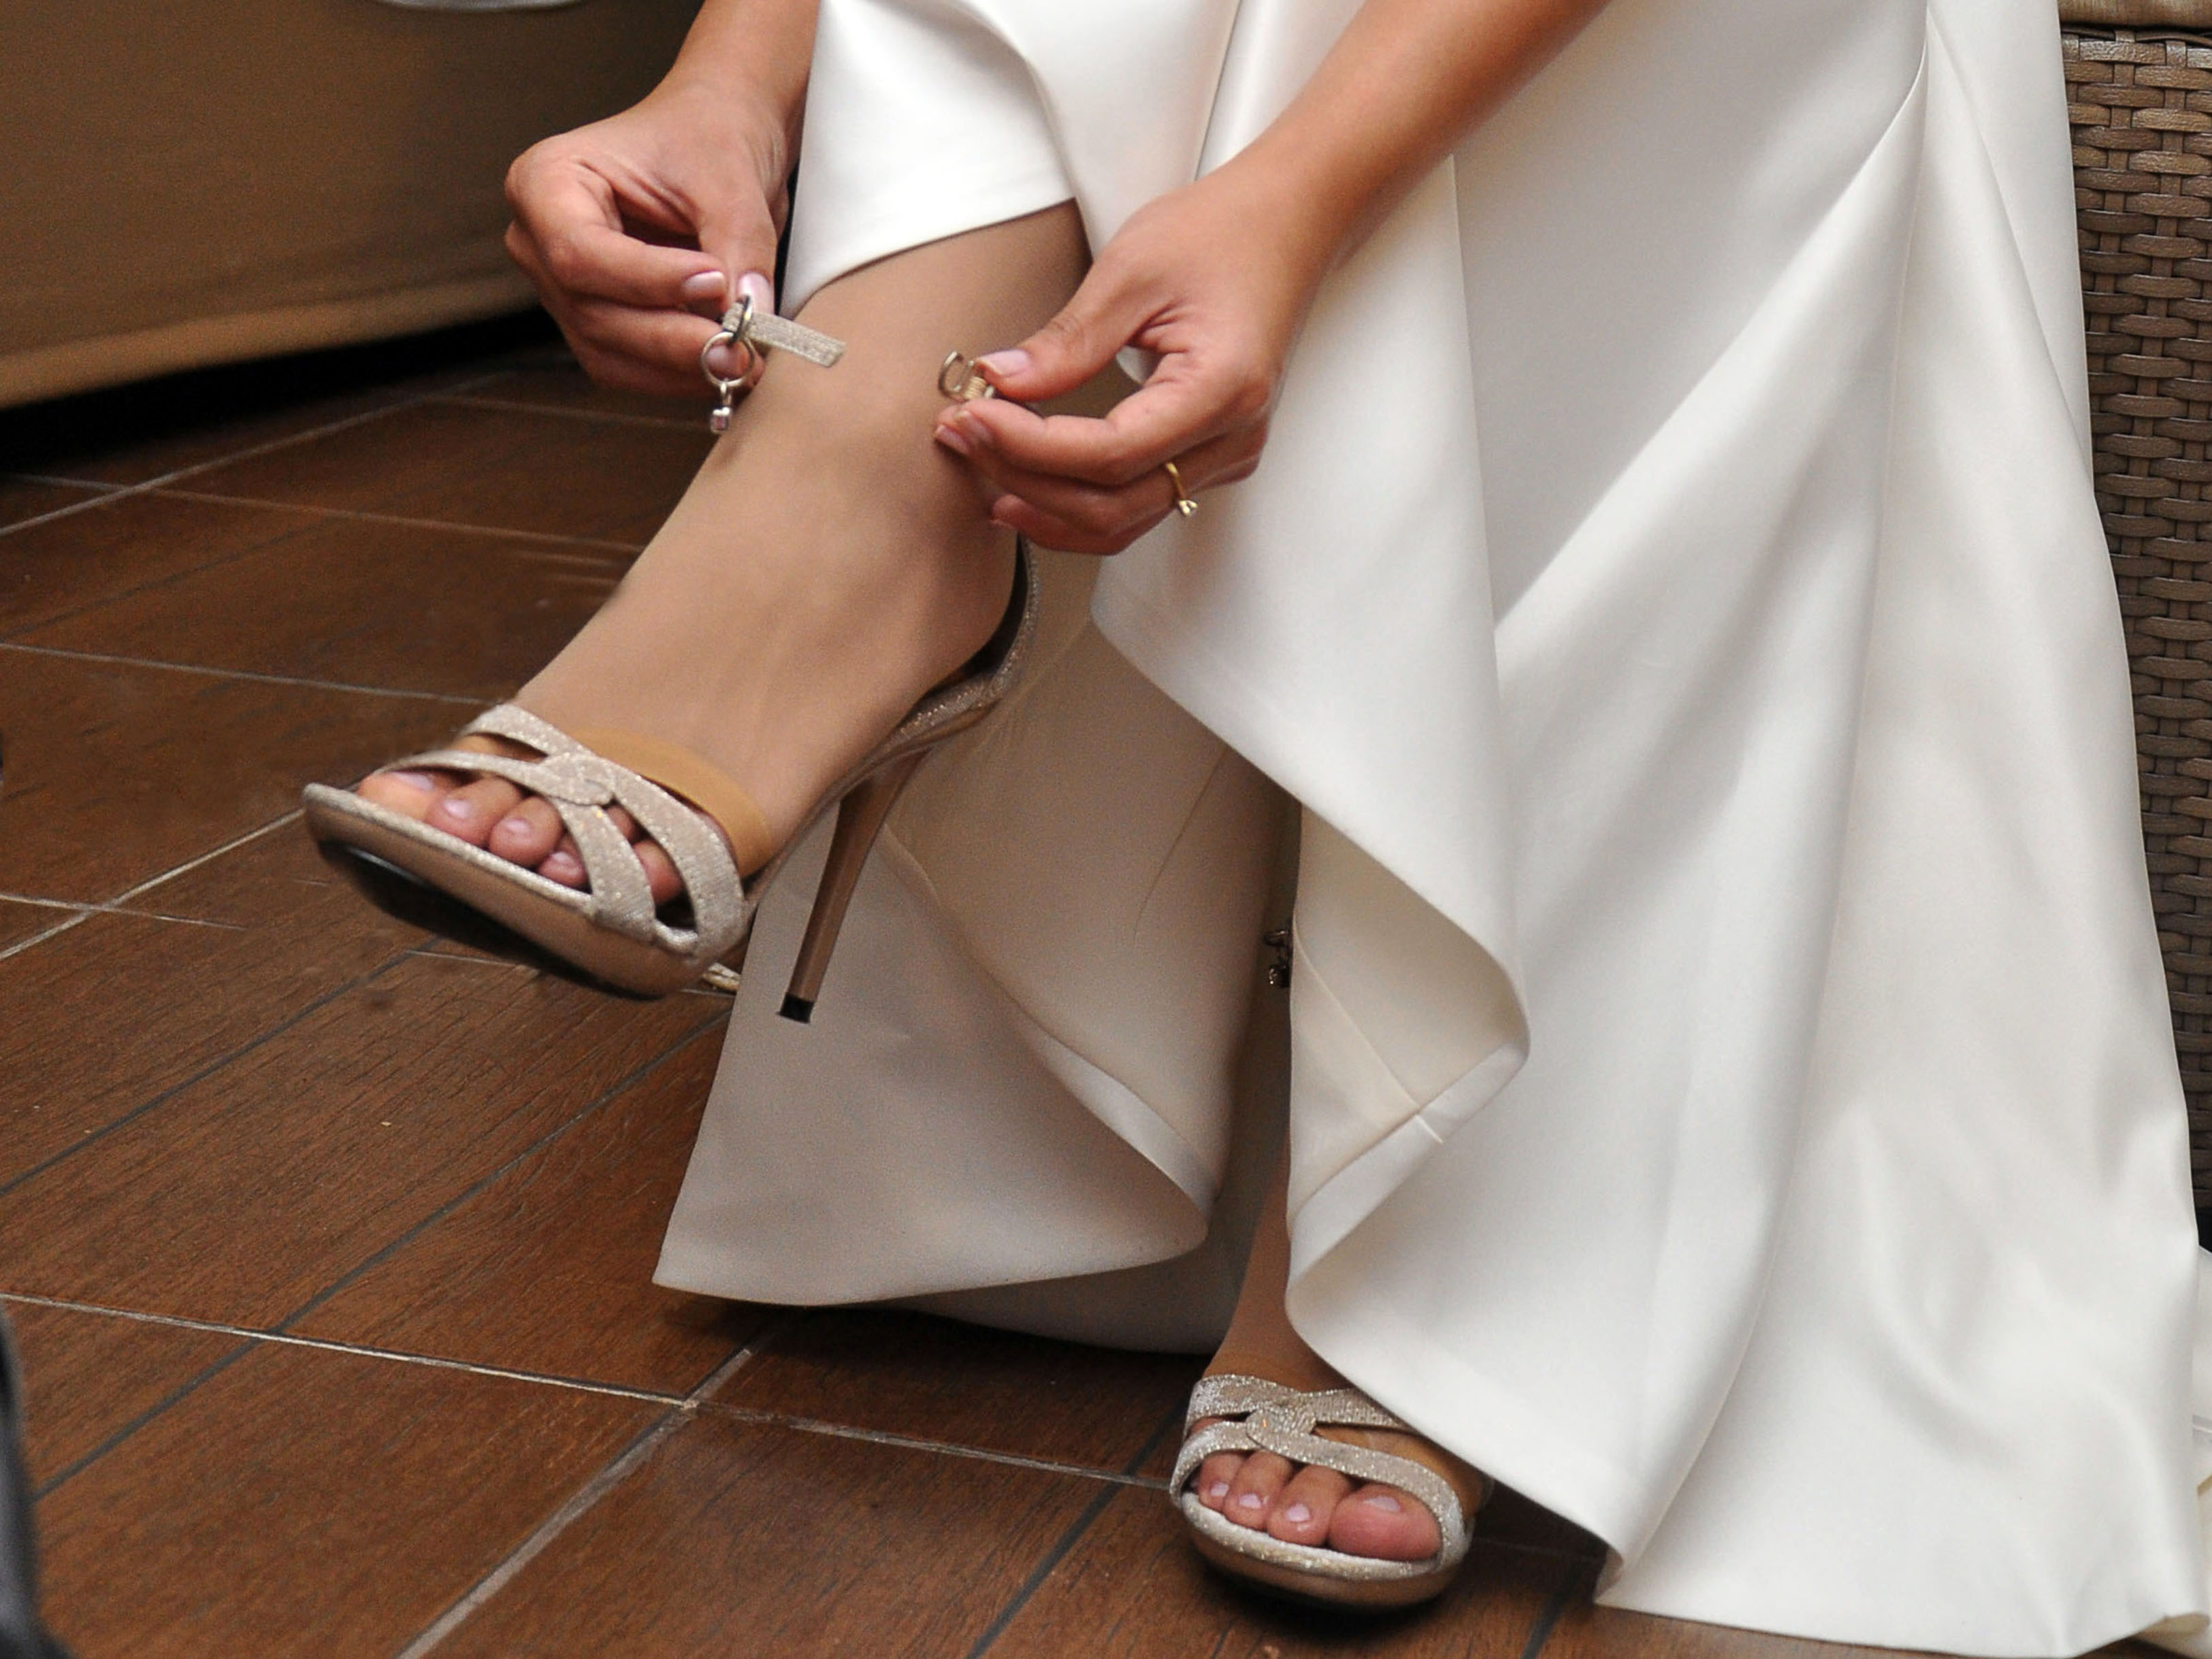 Wear wedding shoes before the dress length adjustment